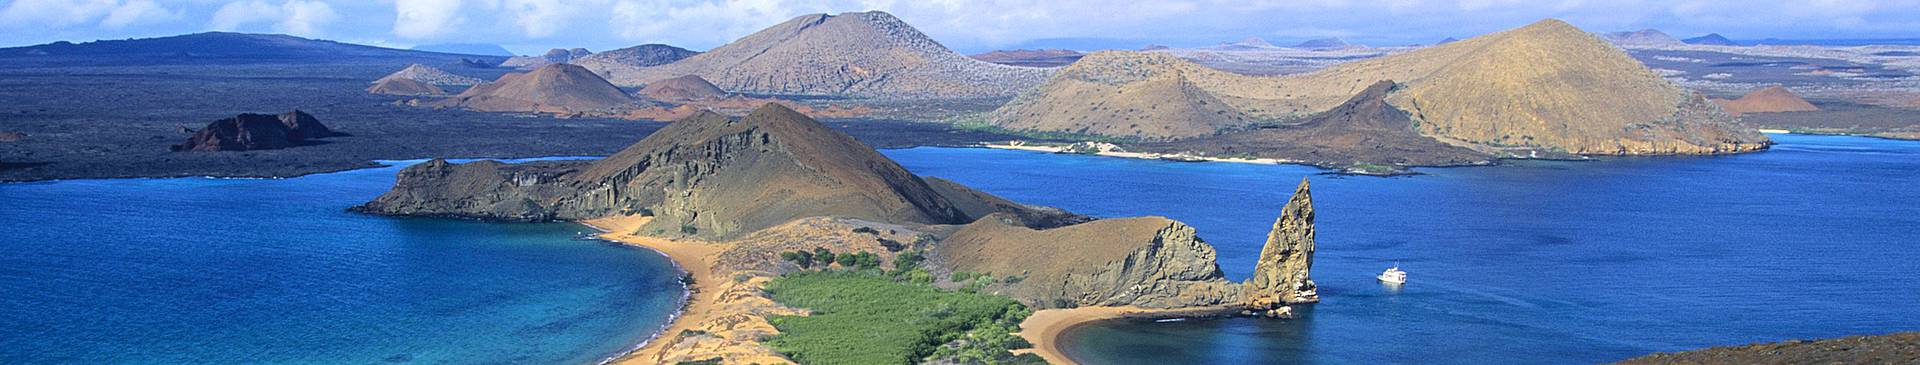 Viaggi alle Isole Galapagos in autunno